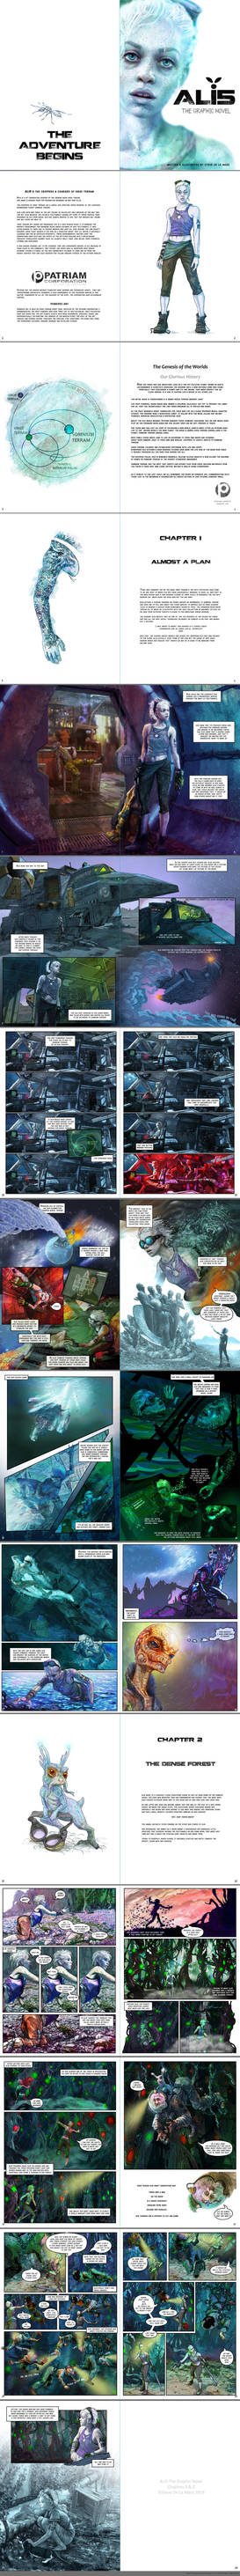 ALI5 The Graphic Novel first chapters by SteveDeLaMare